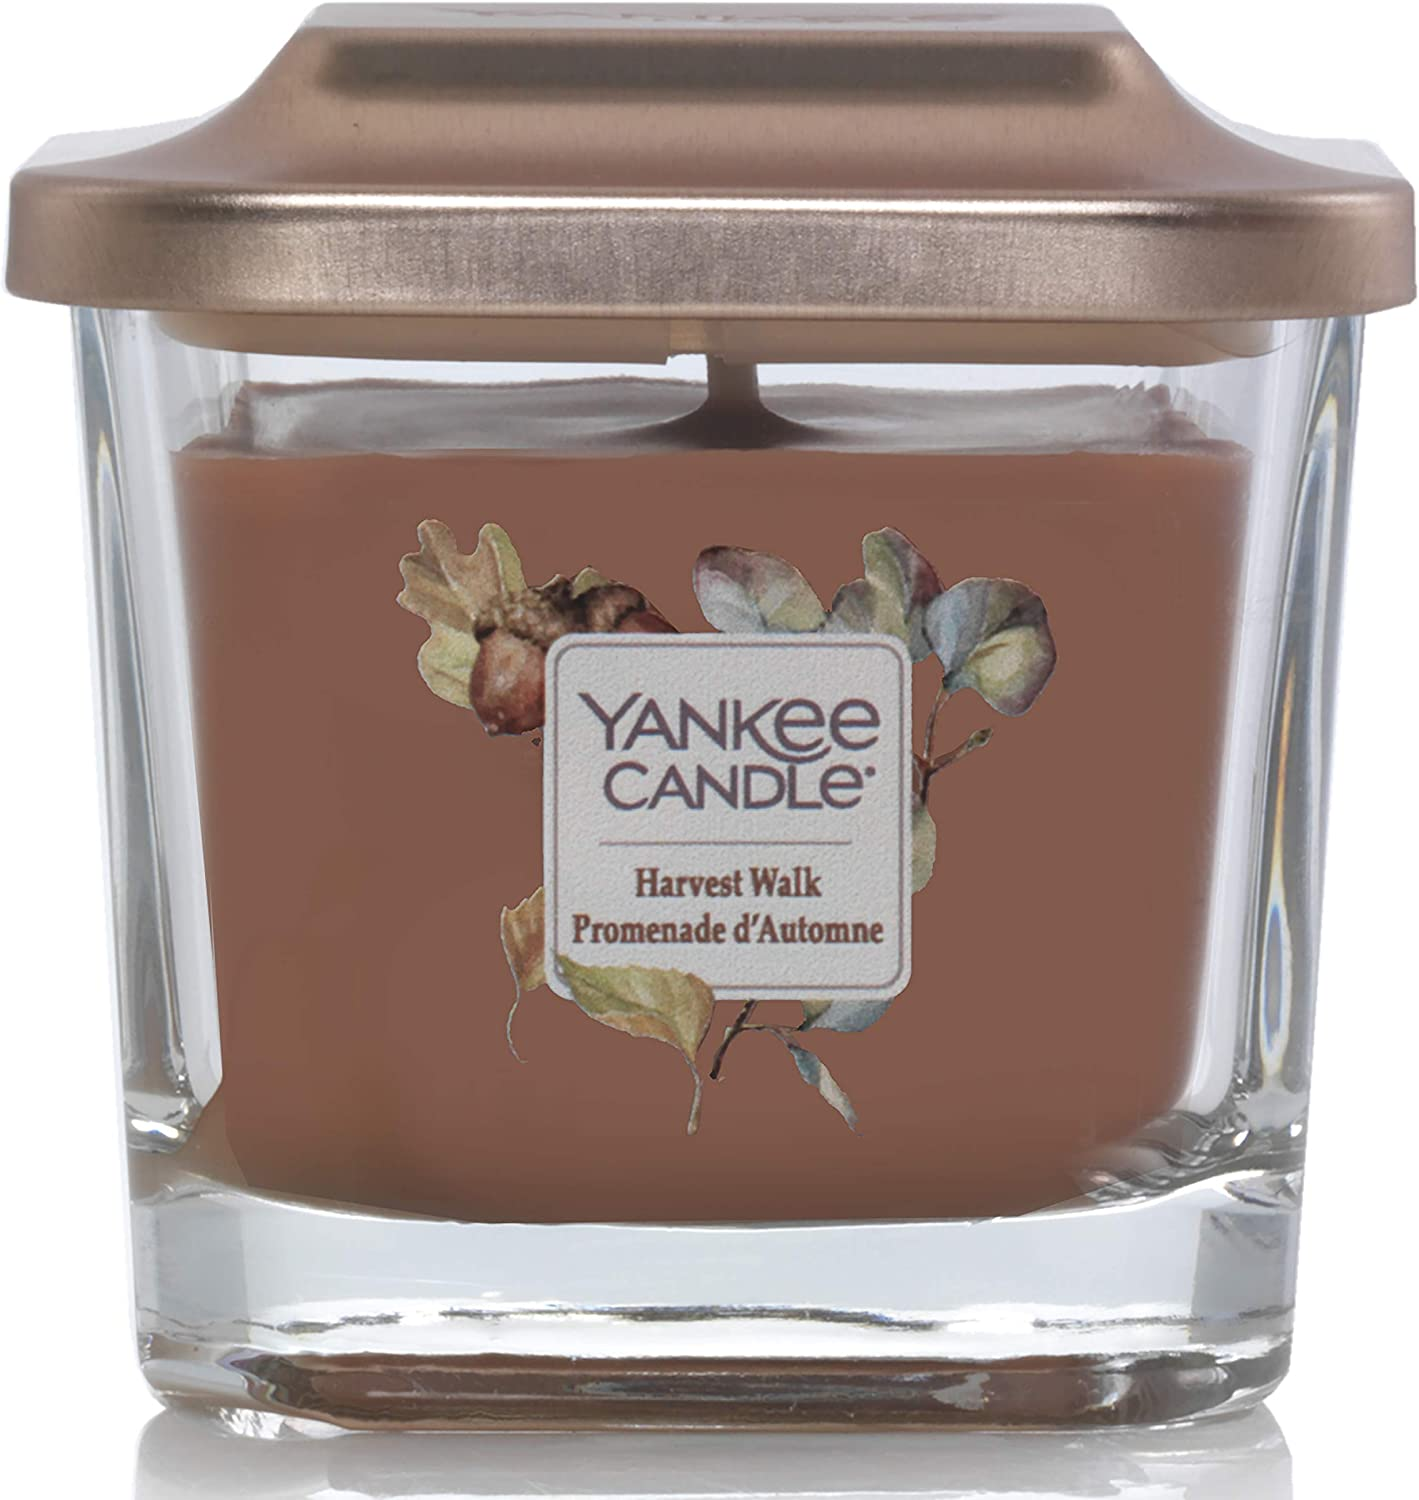 Yankee Candle Elevation Collection with Platform Lid Small 1-Wick Square Candle, Harvest Walk